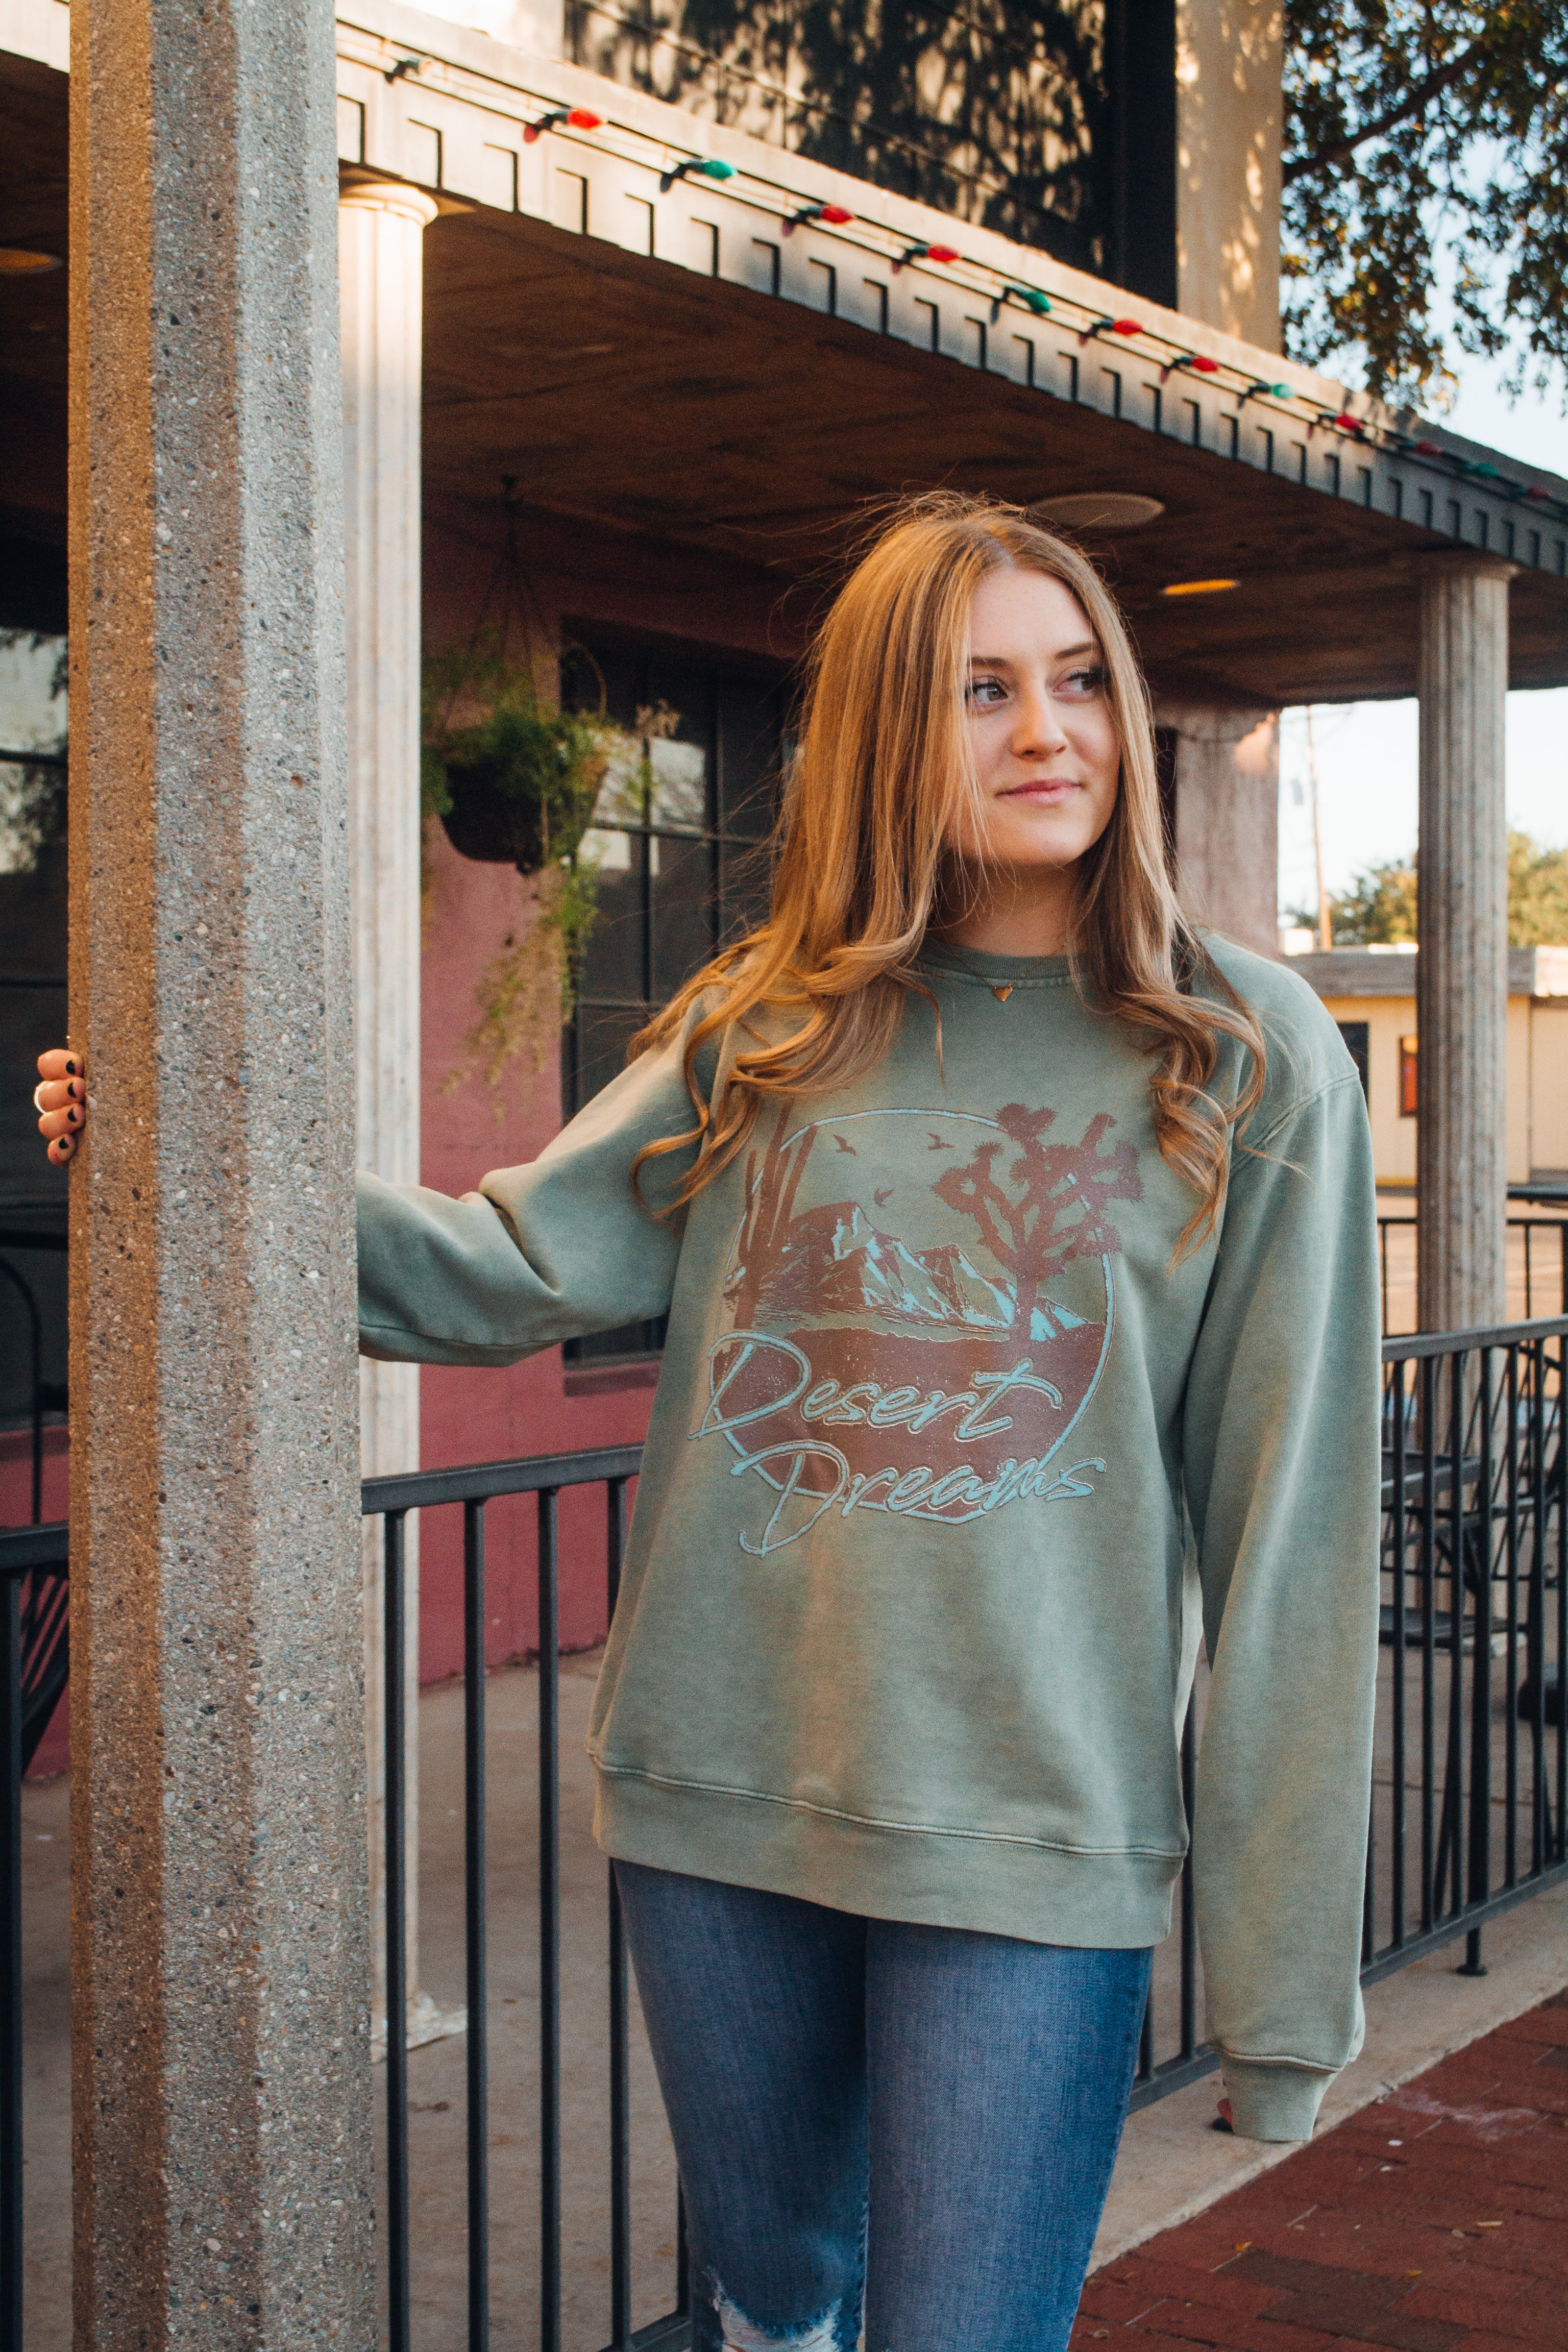 Desert Dreams Sweatshirt